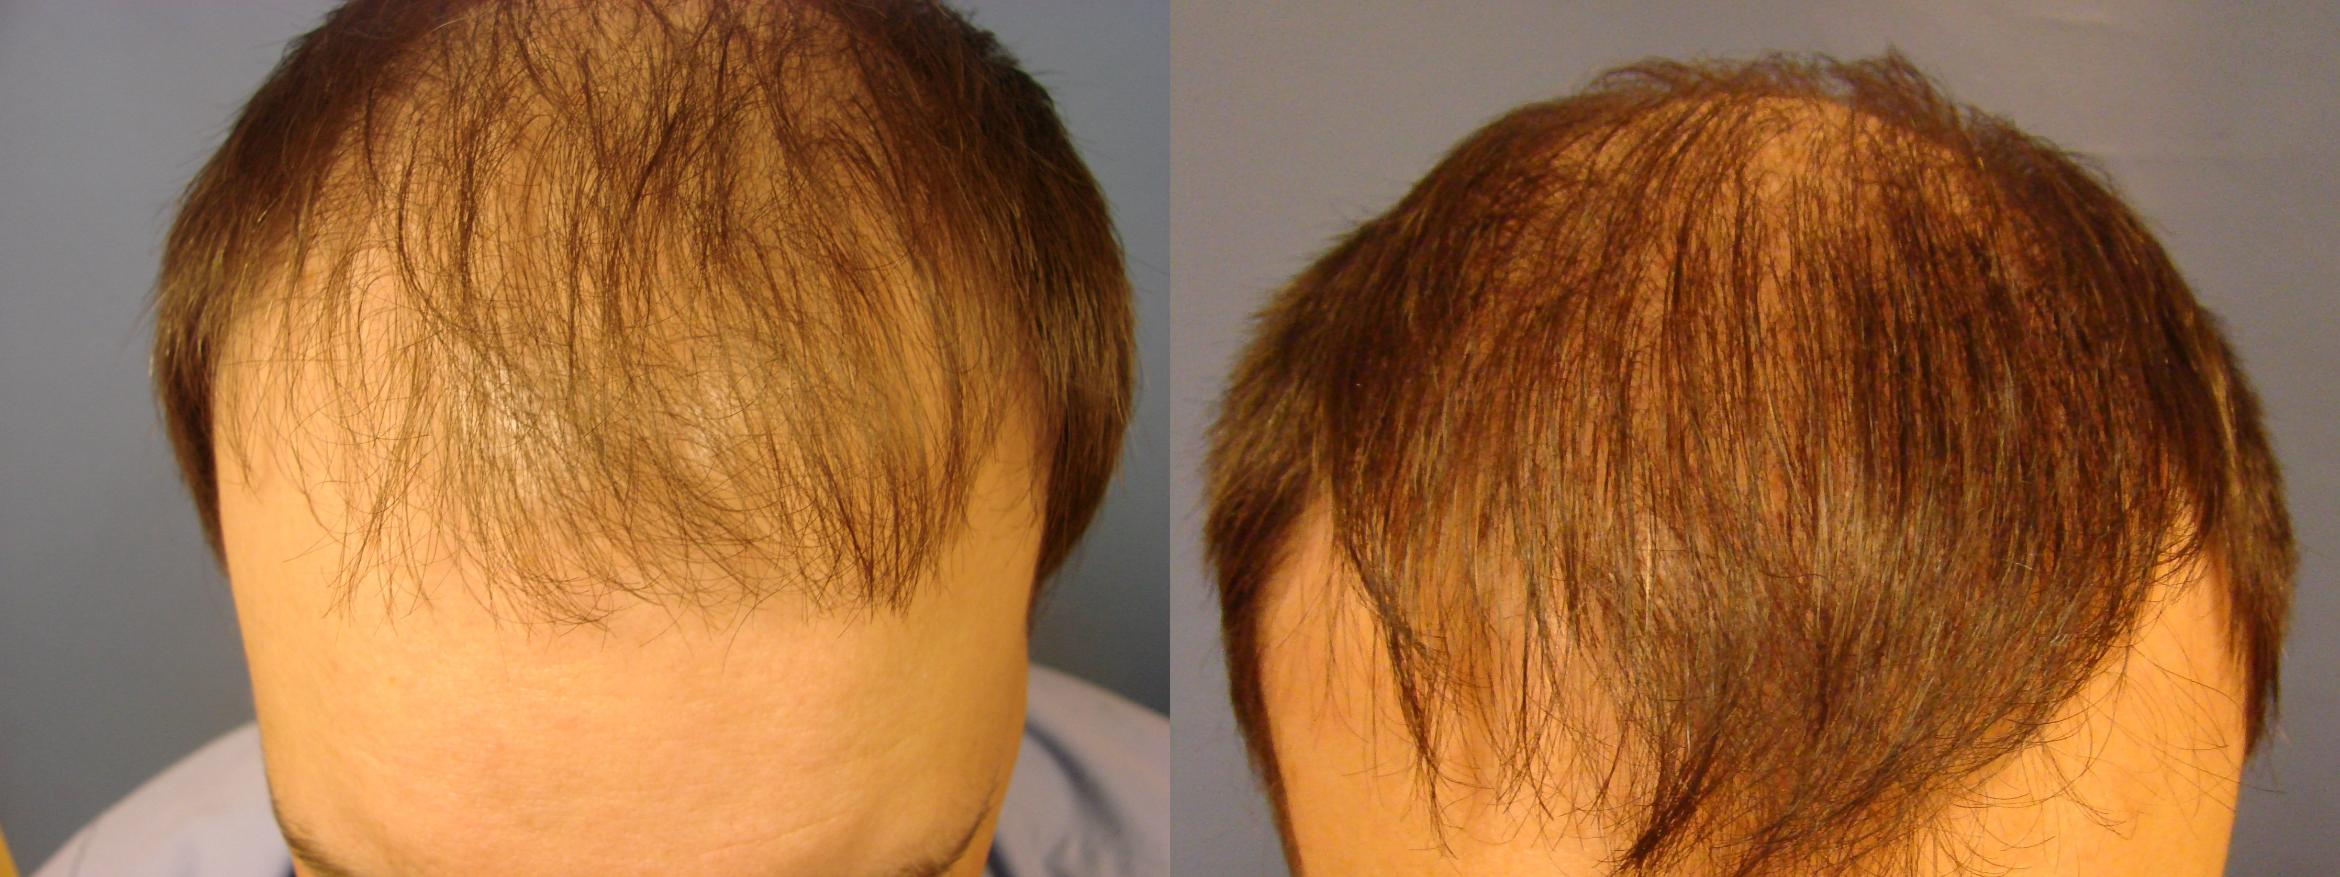 Neograft Hair Replacement Case 86 Before & After View #1 | Birmingham, AL | Dr. Michael S. Beckenstein